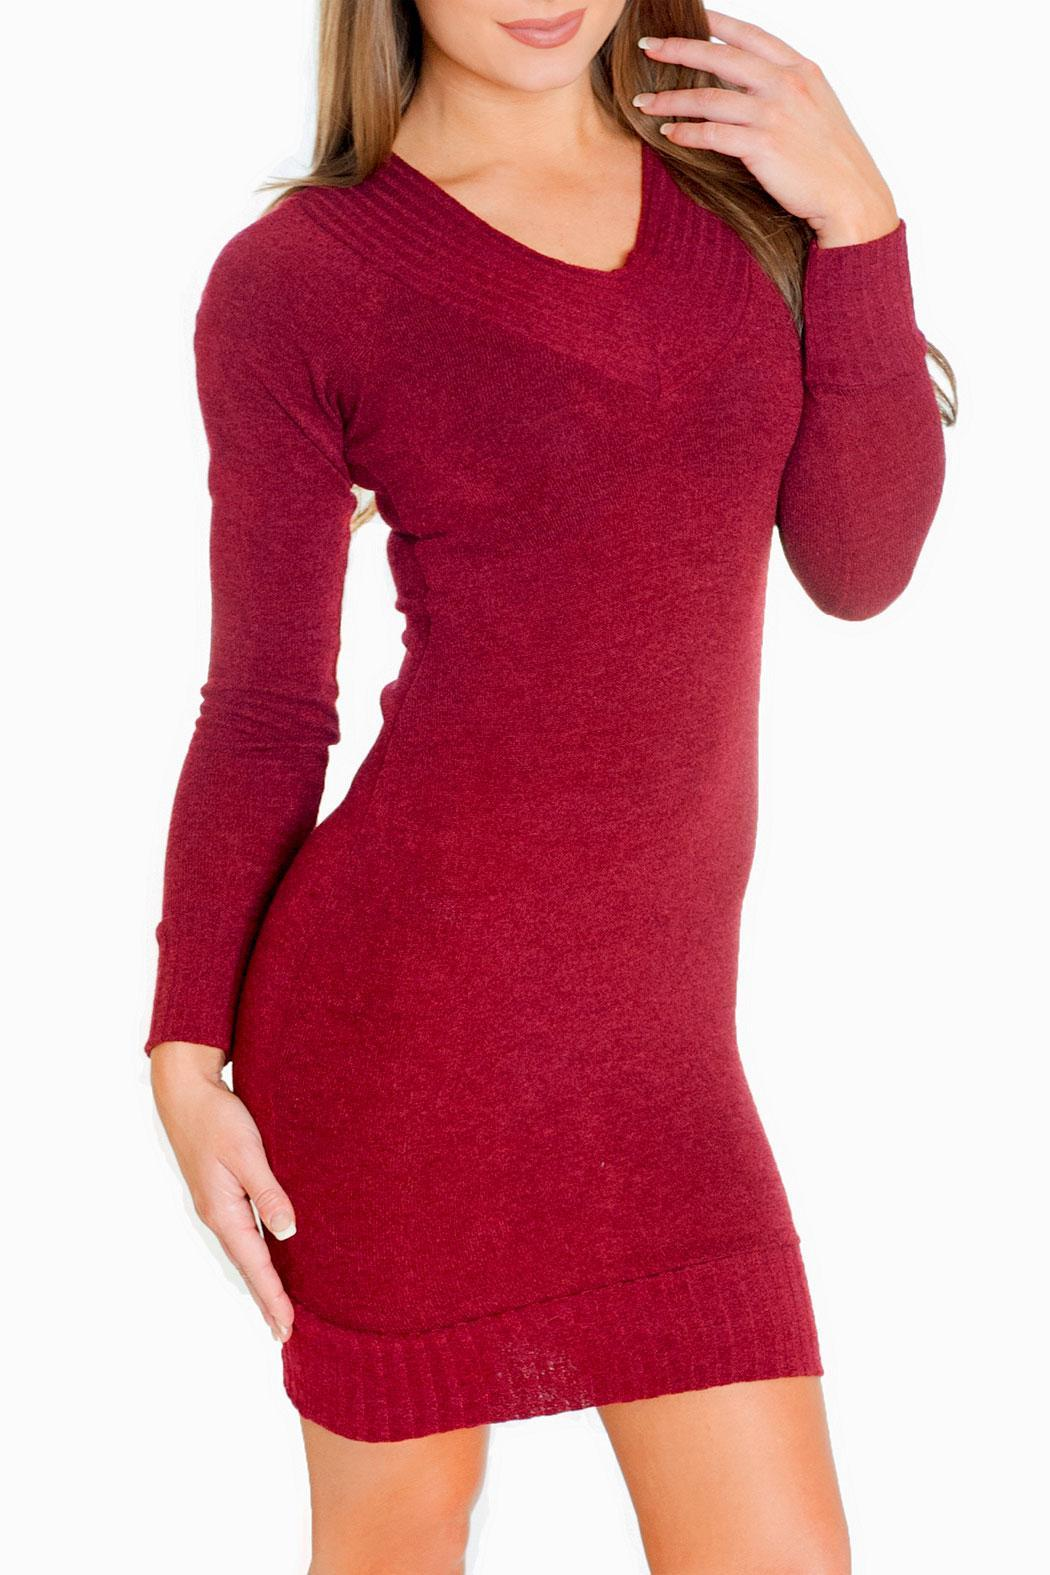 Chynna Dolls Gigi Sweater Dress - Main Image